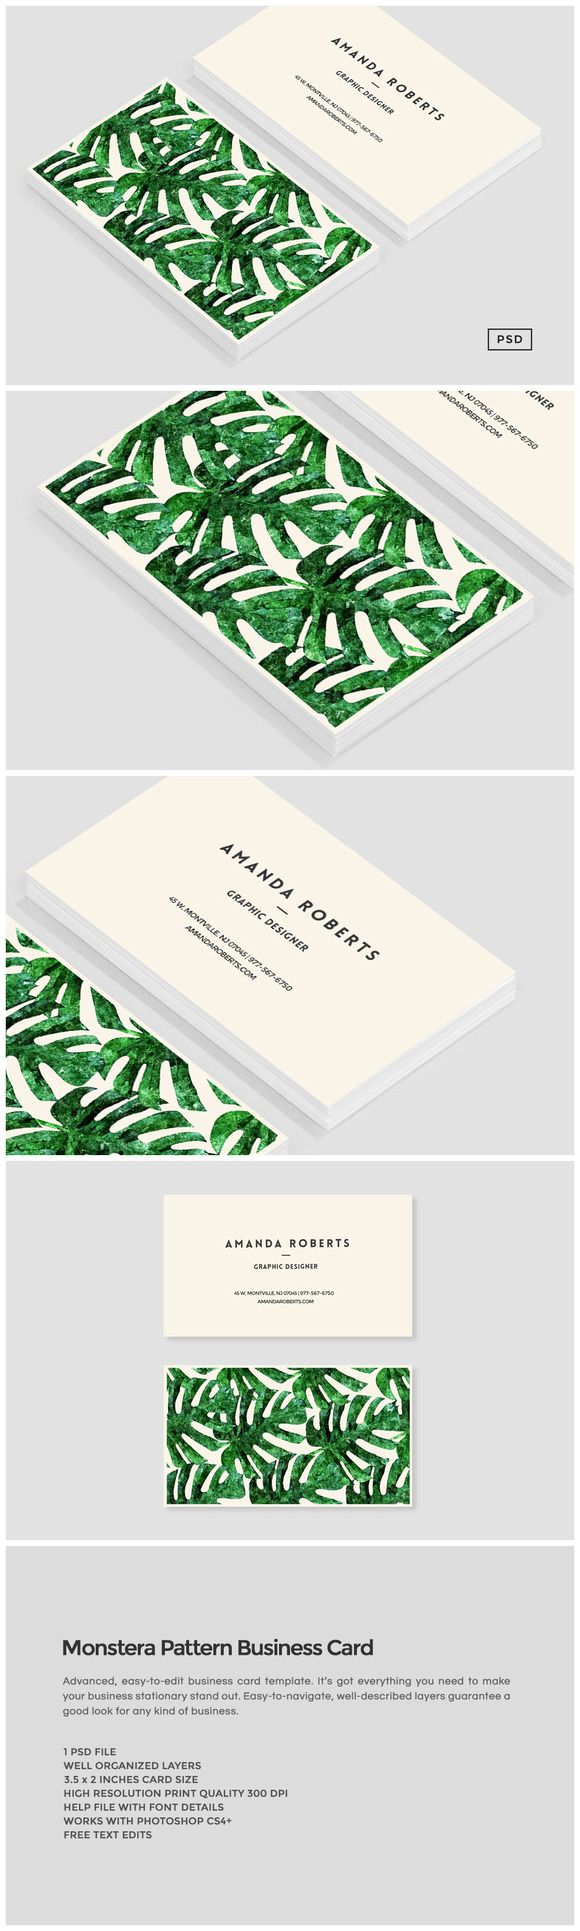 Monstera Pattern Business Card Introducing our latest Monstera Pattern business card template, perfect for use in your next project or for your own brand identity. All our logo desi... creativemarket.co... Free business card design http://www.plasticcardonline.com/